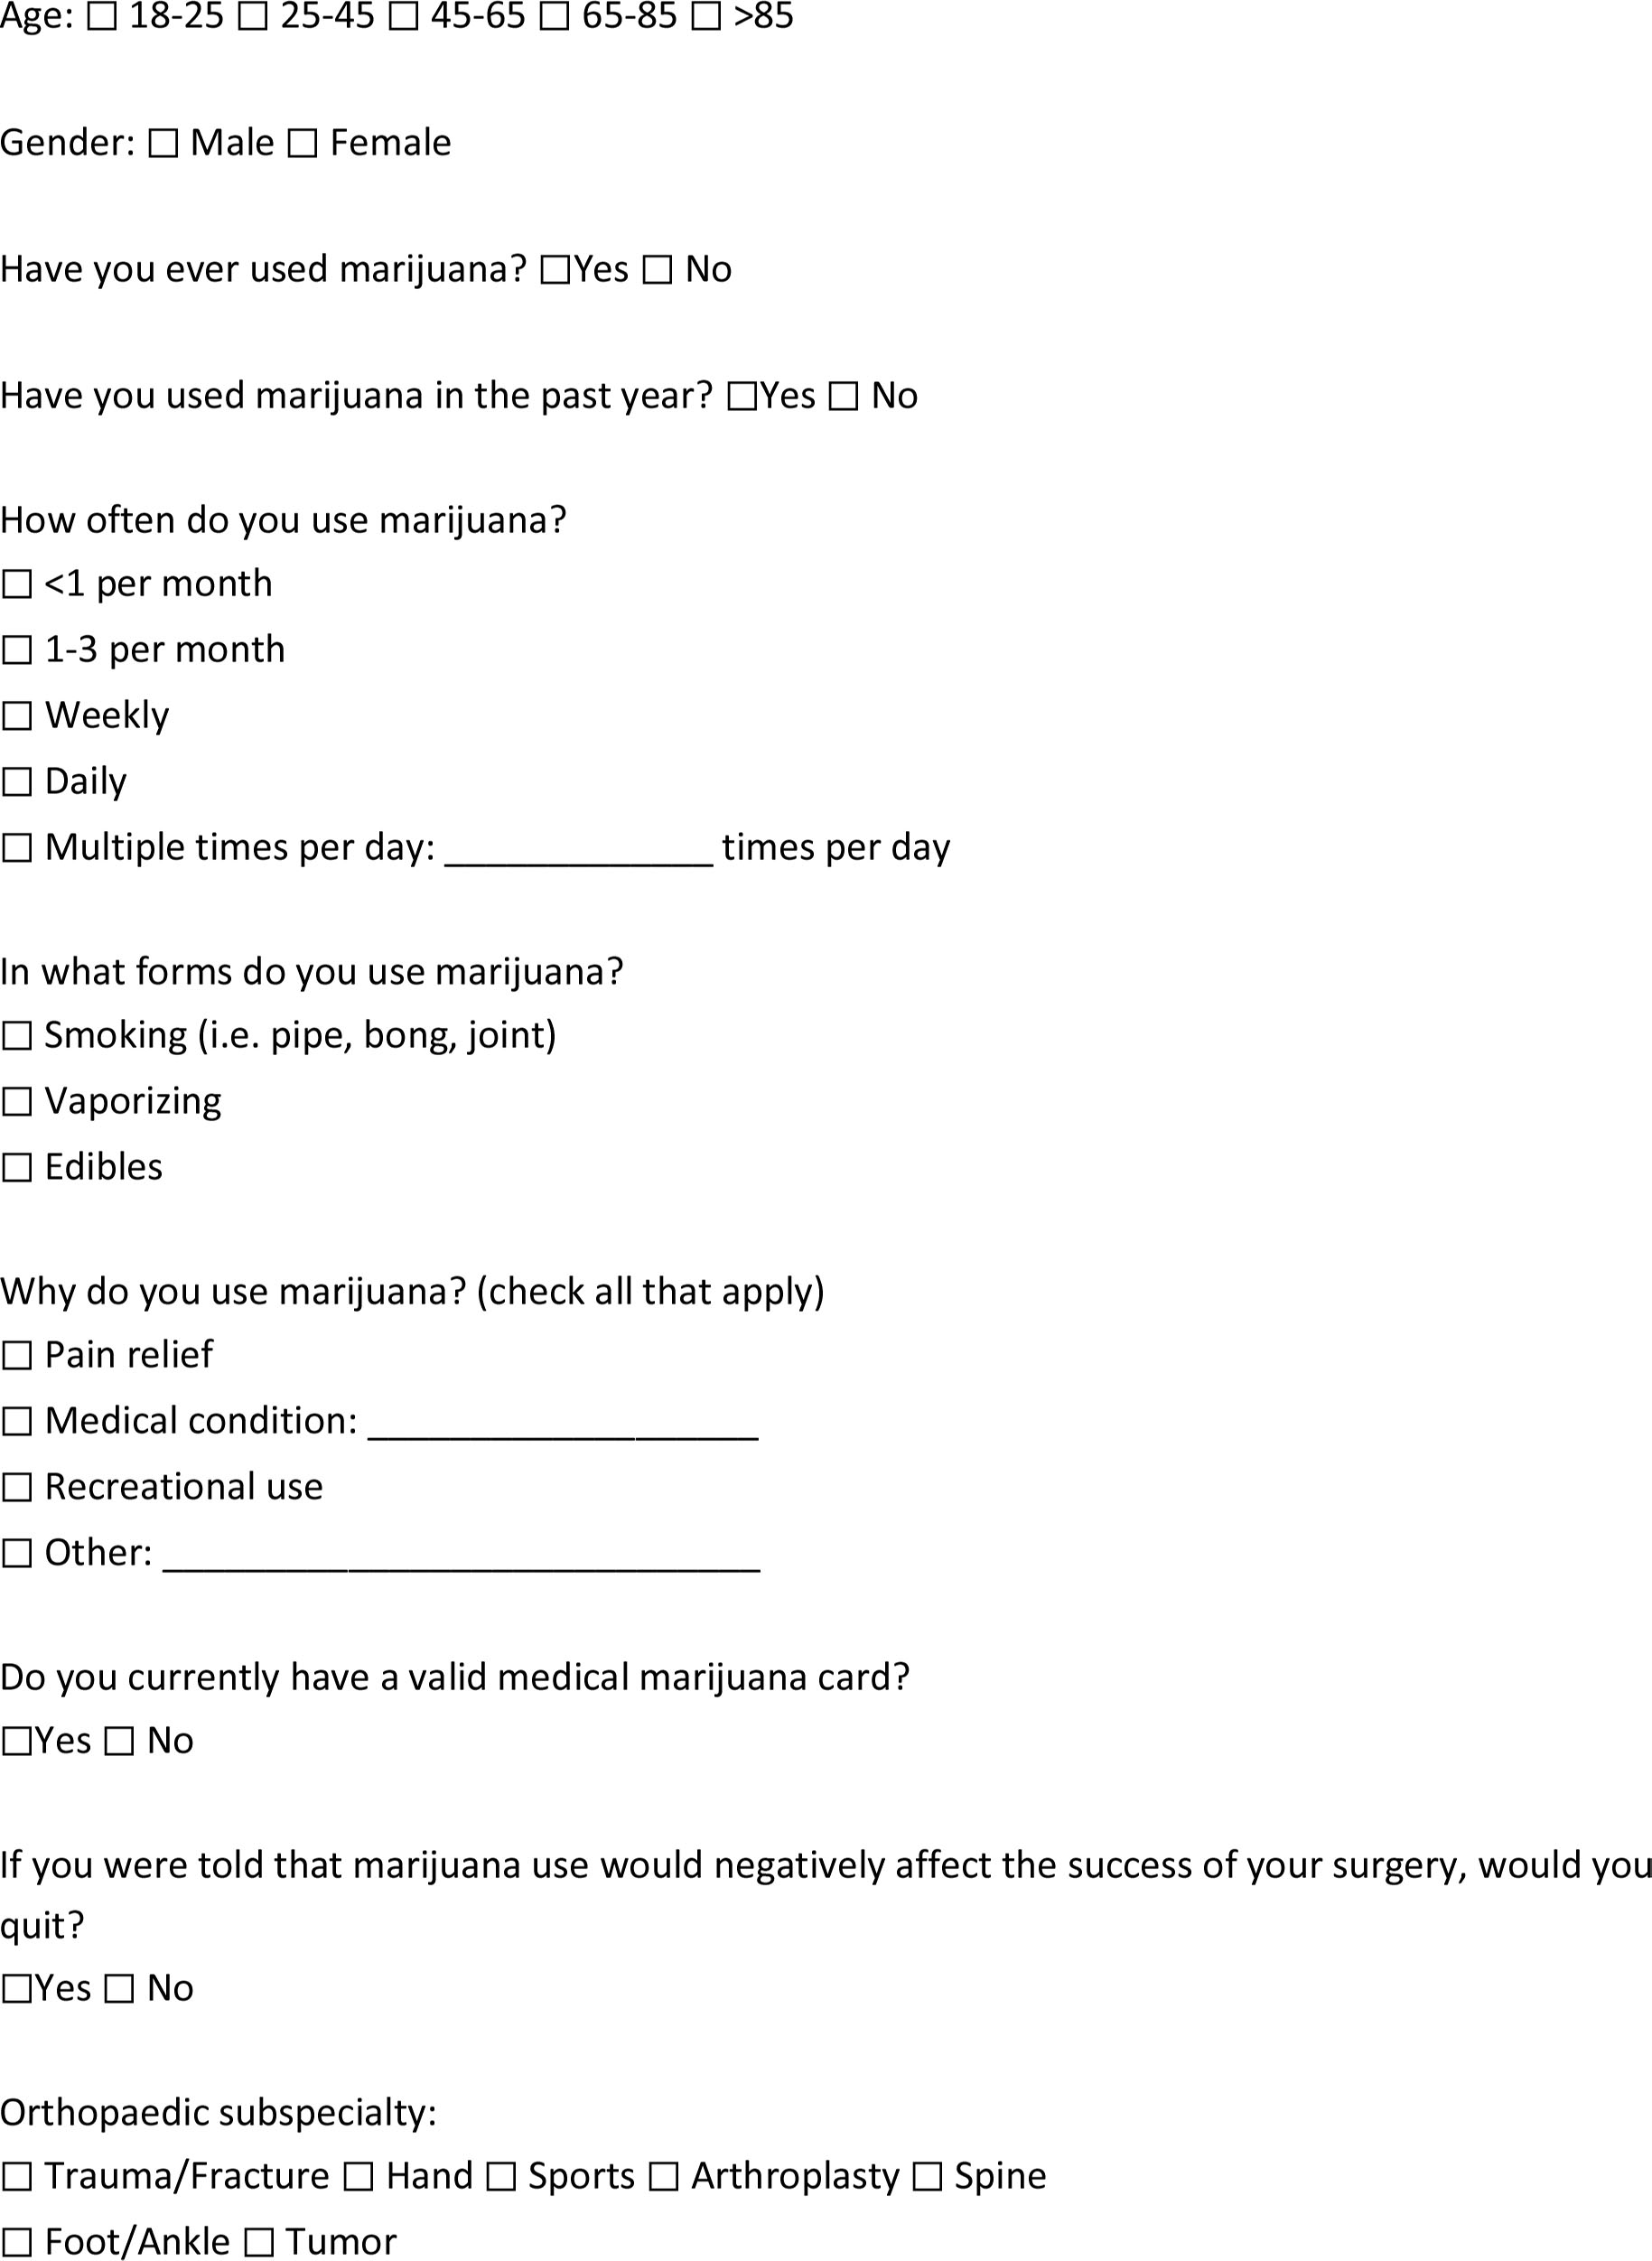 Copy of Survey Given to PatientsResearch Study: Incidence of Marijuana Use in Orthopaedic SurgeryWe are conducting a survey to better understand the incidence of marijuana use in patients with orthopaedic injuries and conditions. Please answer honestly and remember that all responses are confidential. Do not fill out this form if you have done so already.